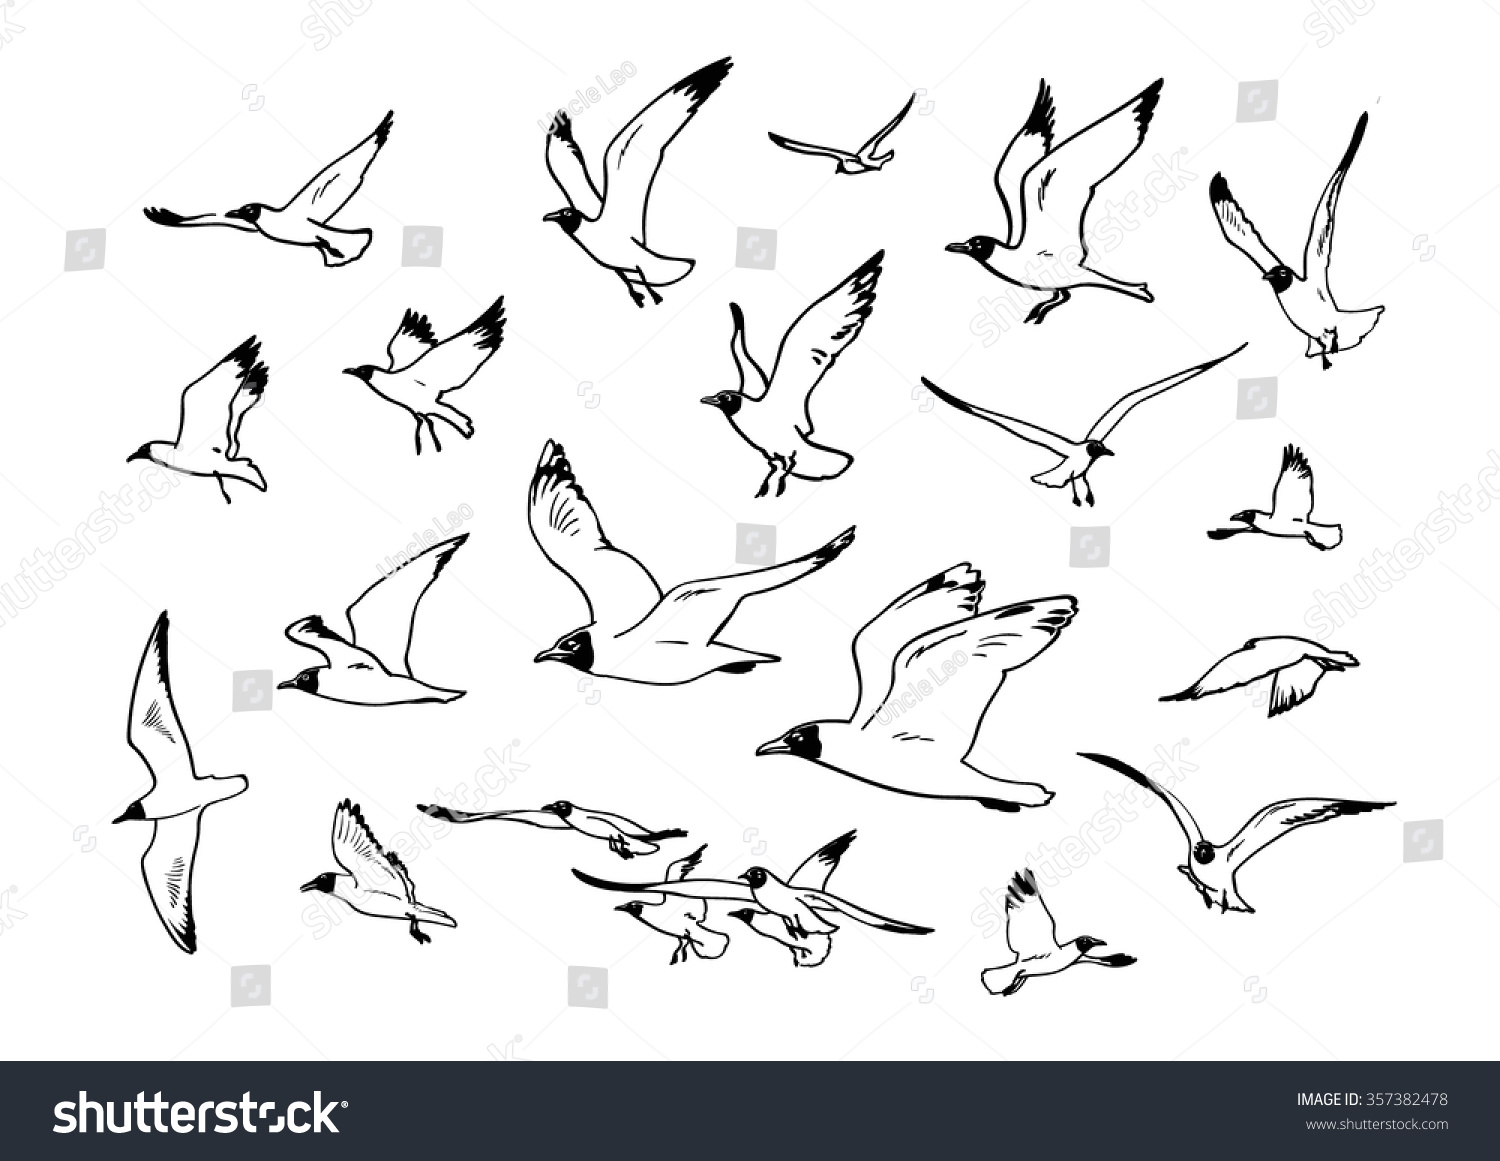 Set of sketches of flying swallows stock vector illustration - Sketch Of Flying Seagulls Set Of Silhouettes Of Seagulls Hand Drawn Vector Illustration